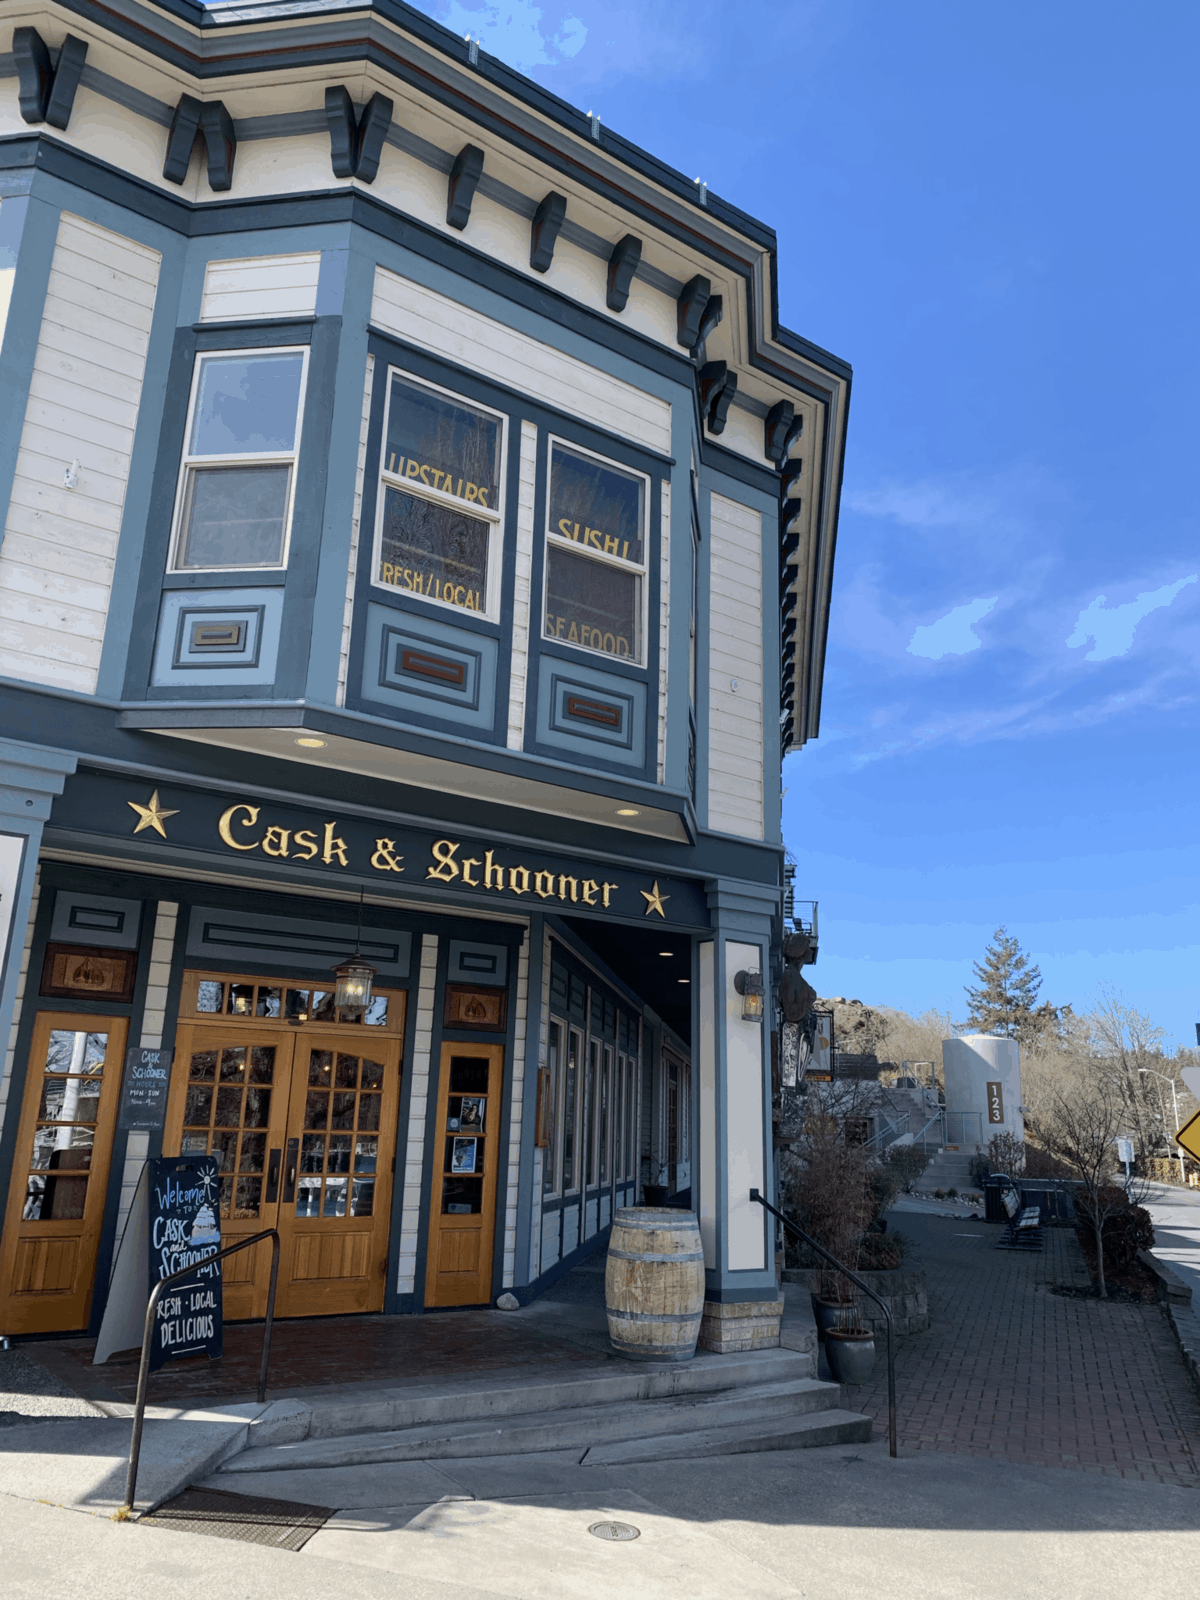 Cask and Schooner Restaurant in Friday Harbor on San Juan Island